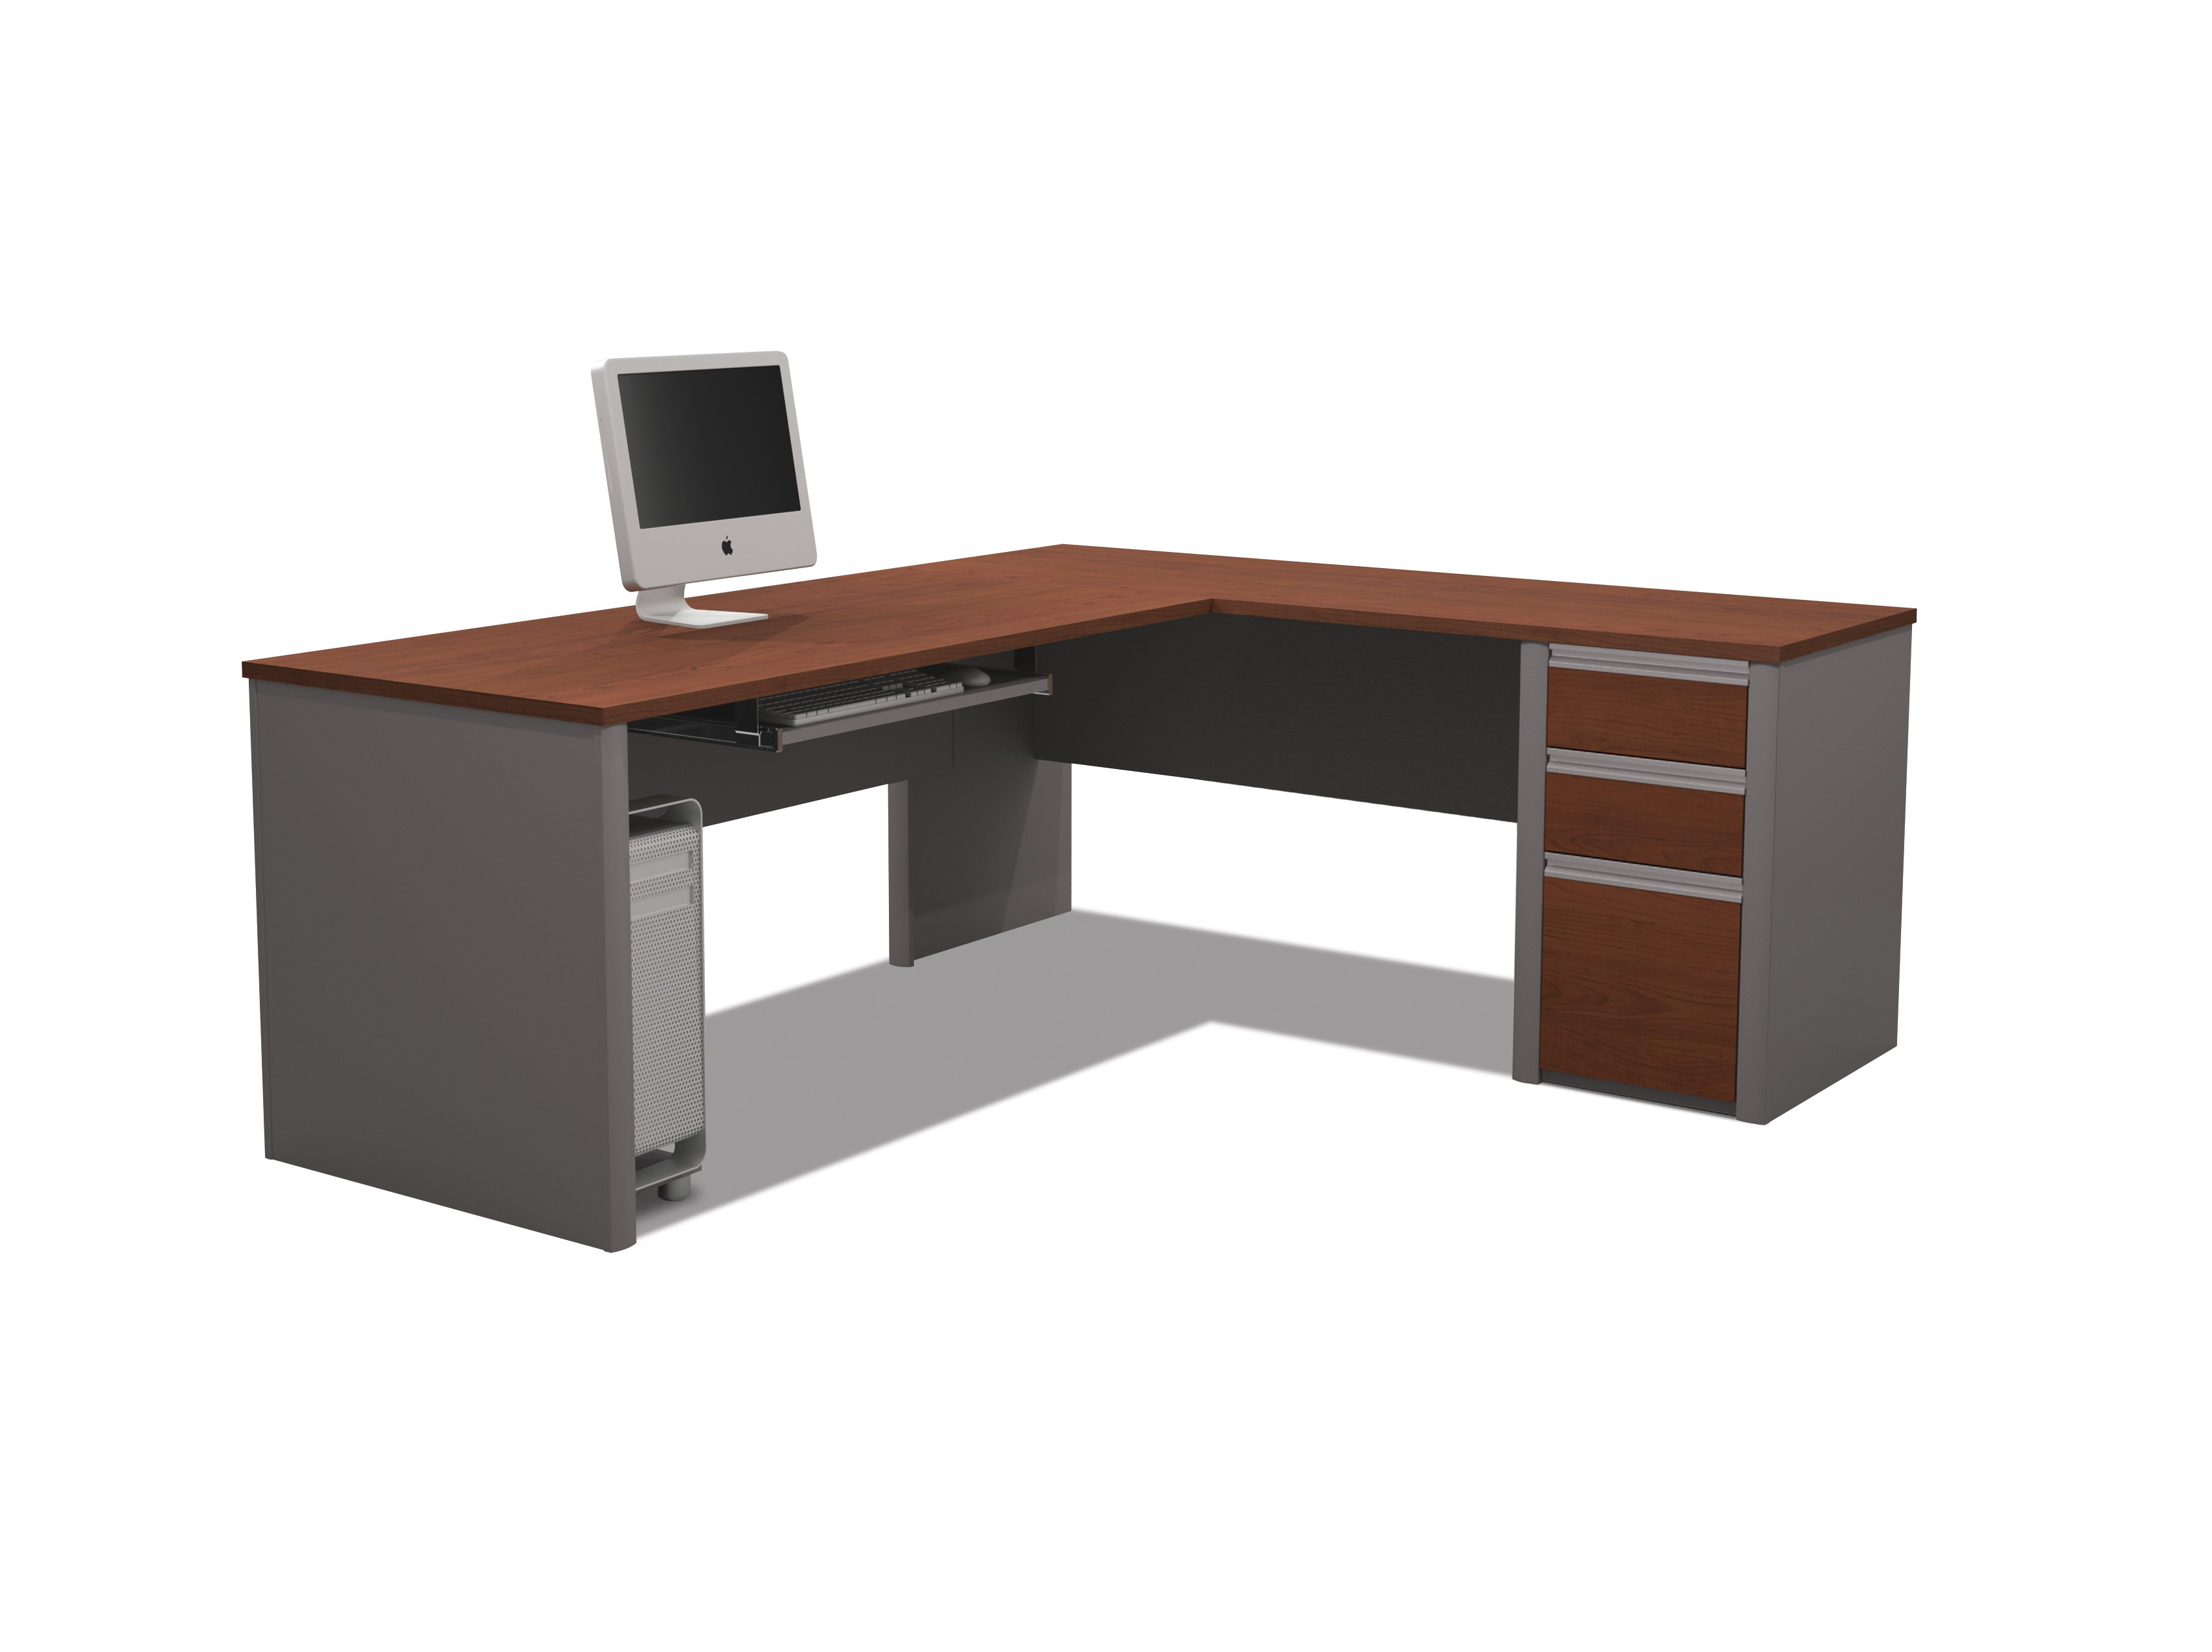 grey wooden desk with brown wooden top and drawers also grey wooden ...